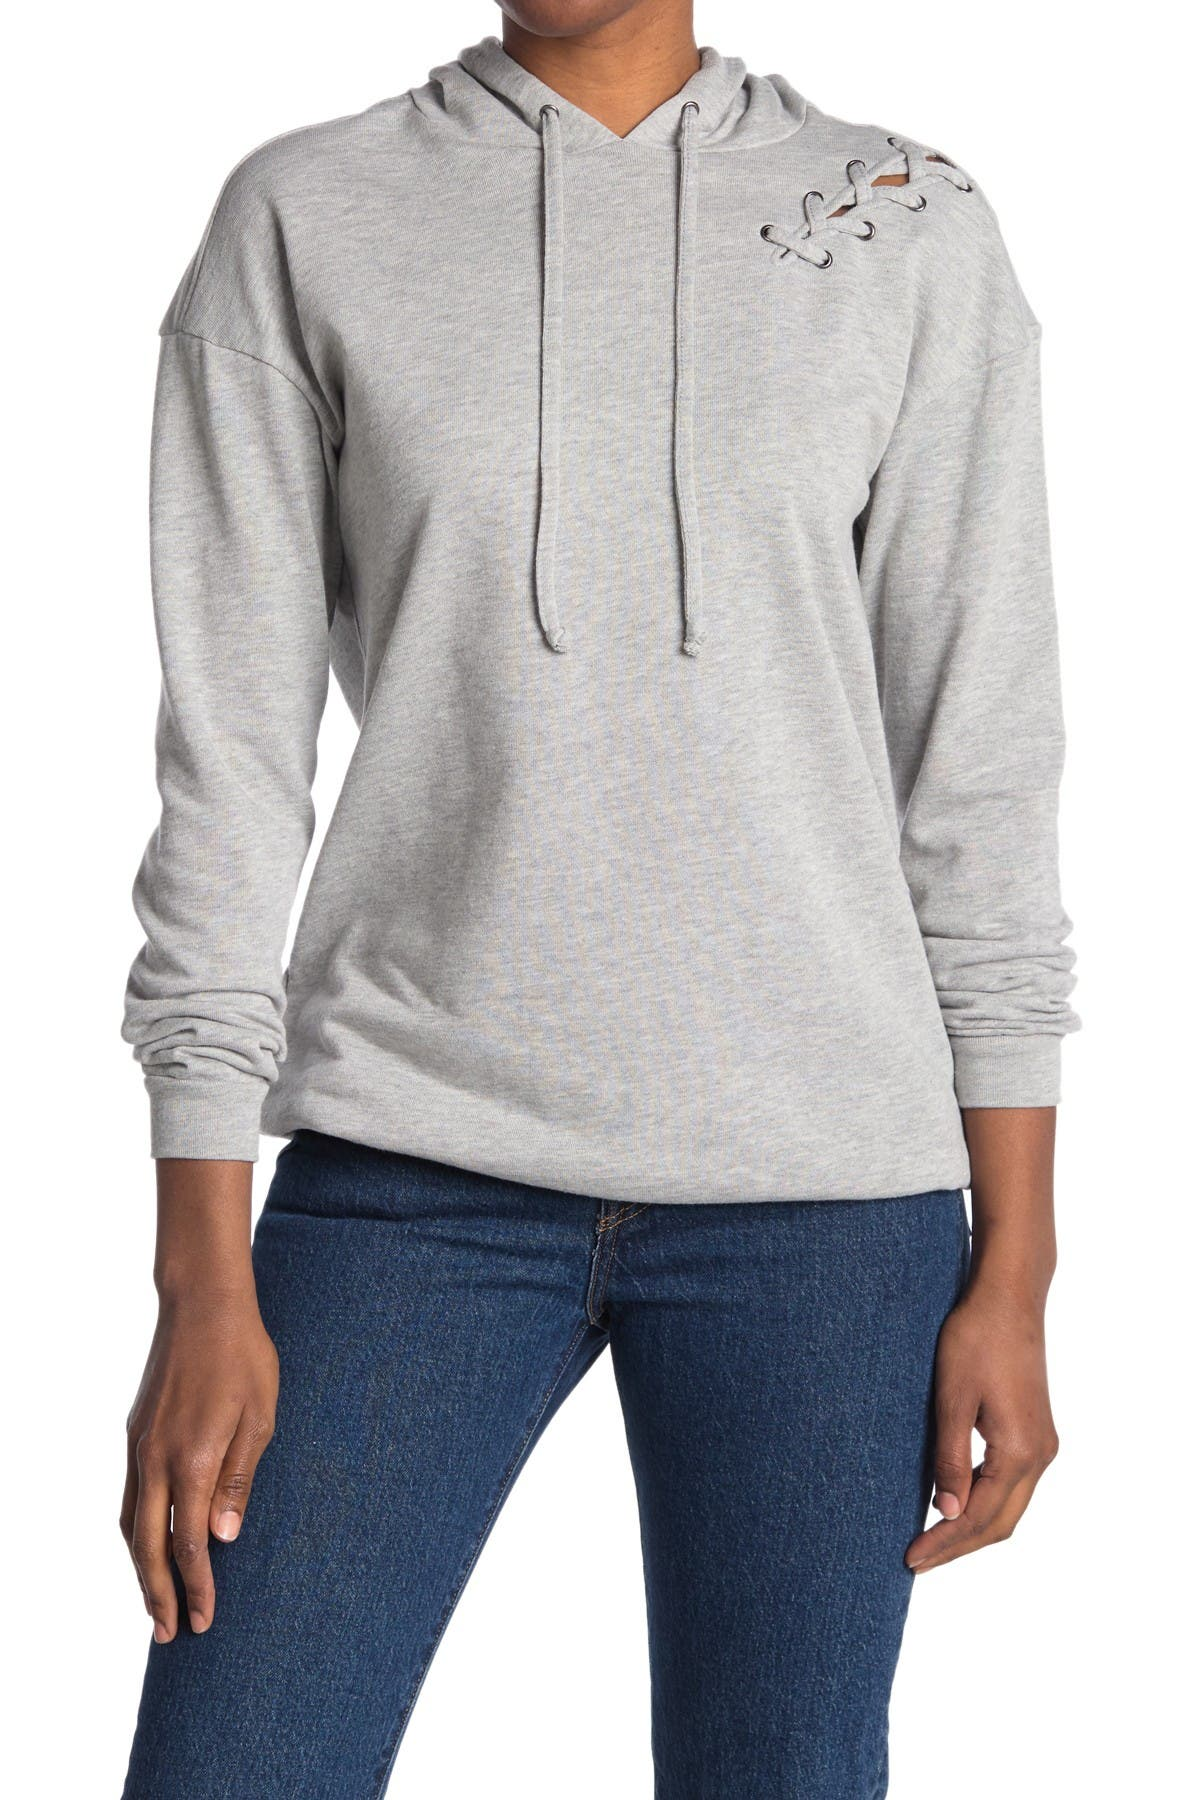 Image of MATERIAL GIRL Lace Up Hoodie Pullover